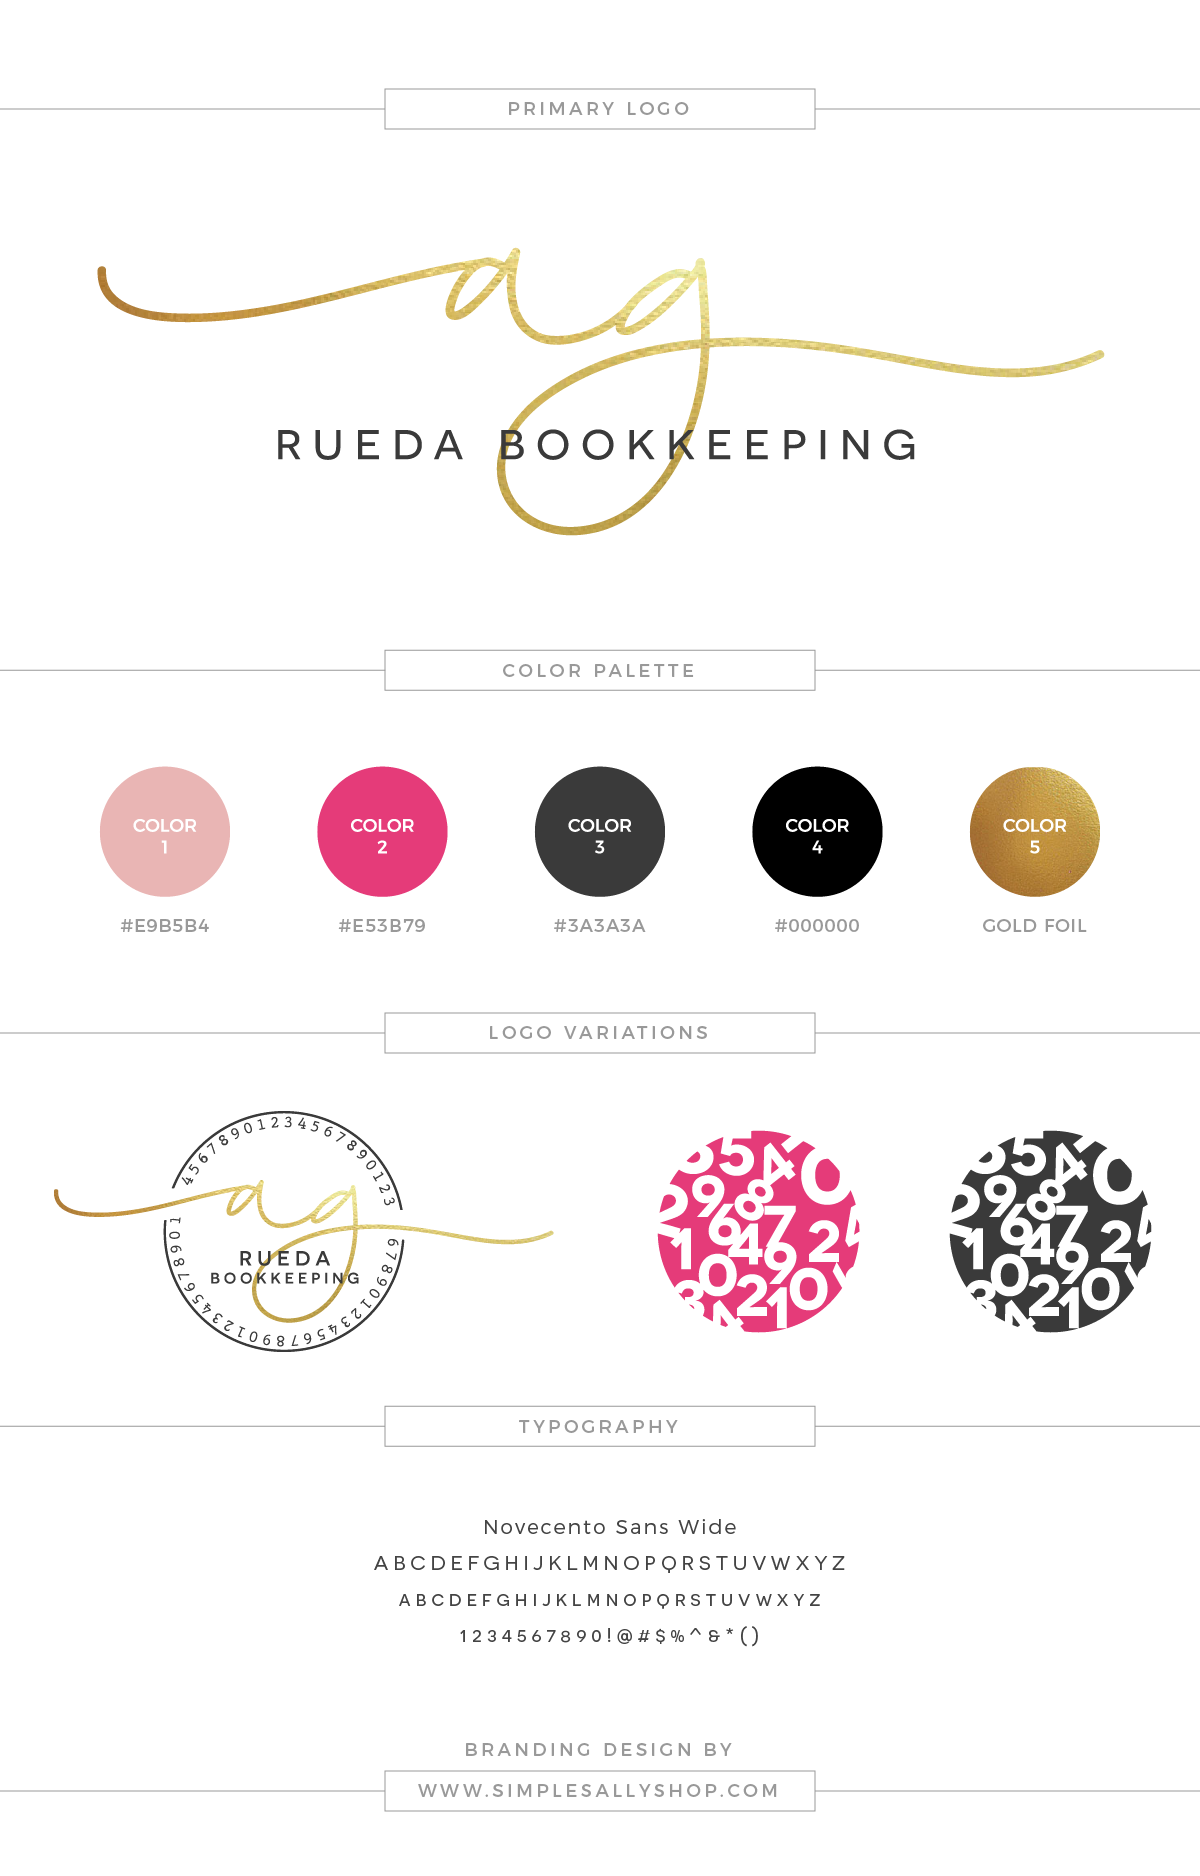 Small Business Logo Design by Simple Sally   #logo #simplelogo #accounting #simplesally